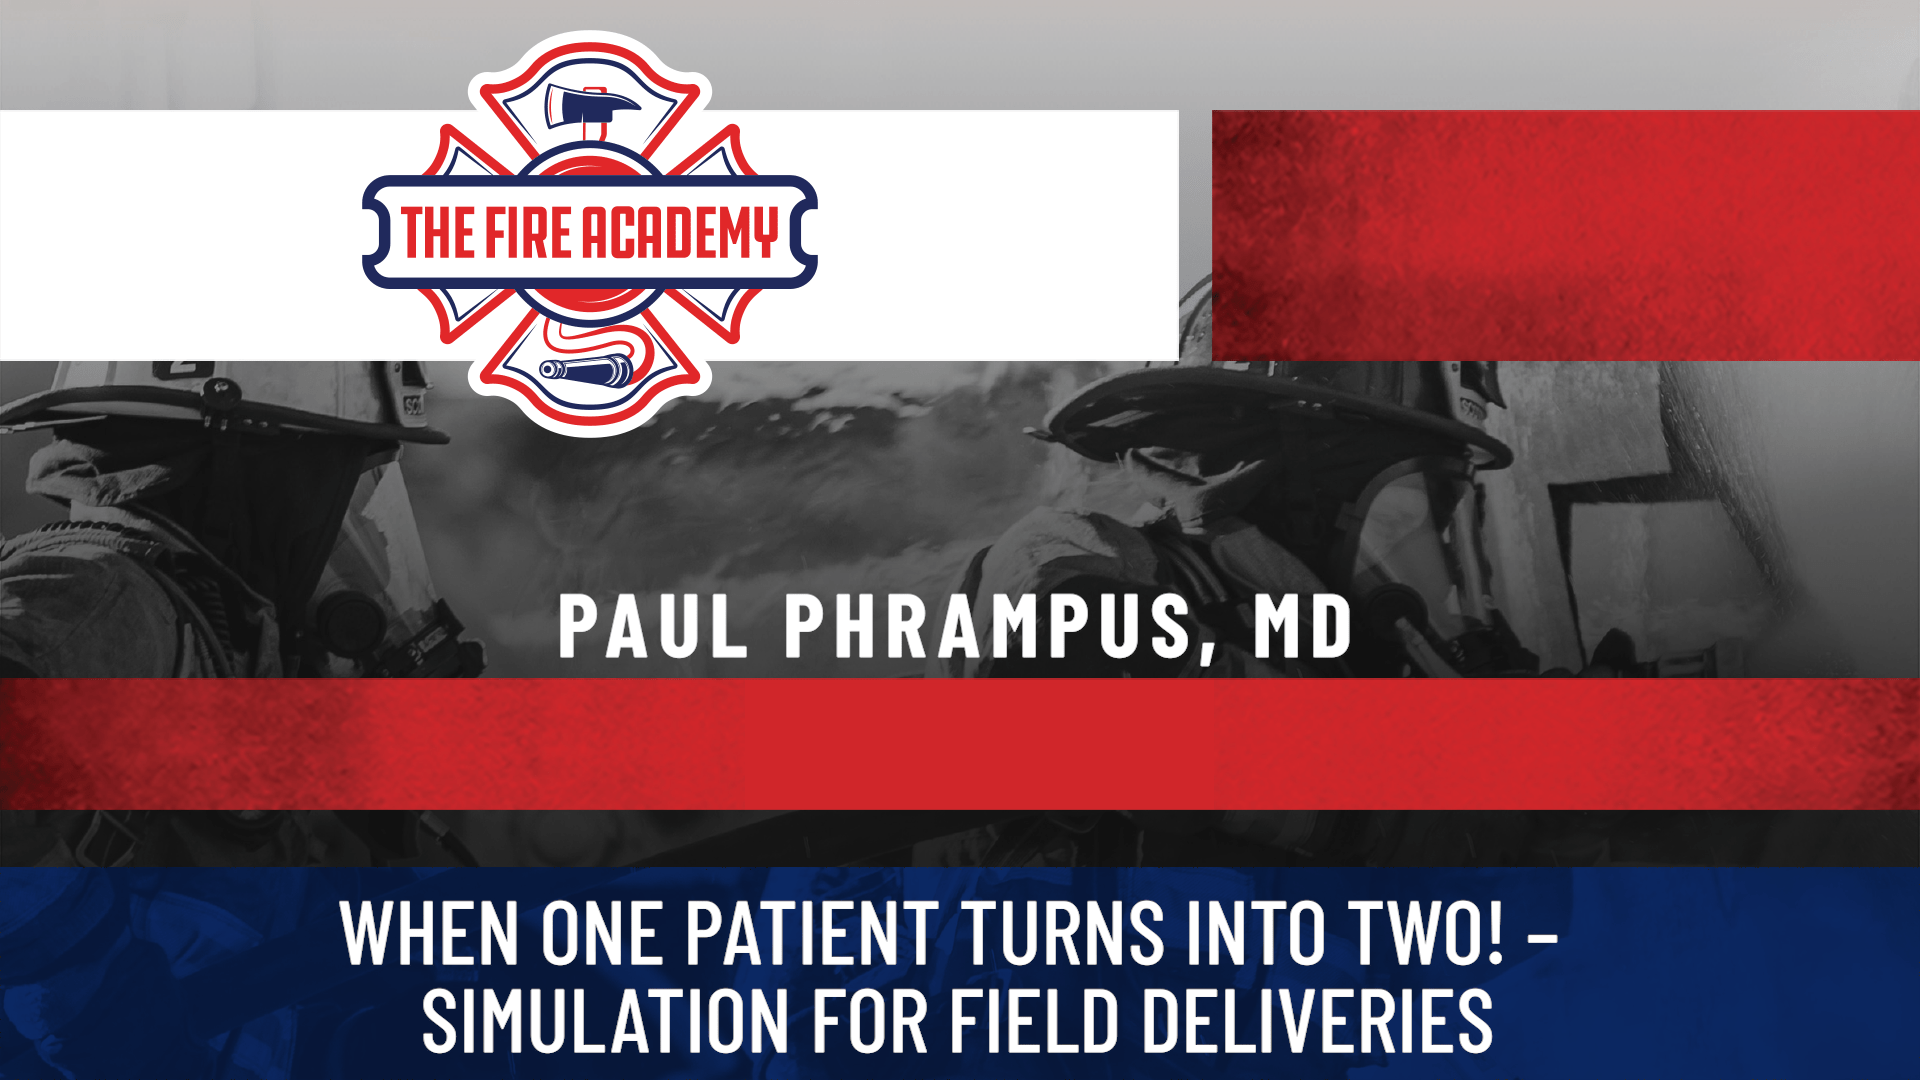 When One Patient Turns into Two! – Simulation for Field Deliveries